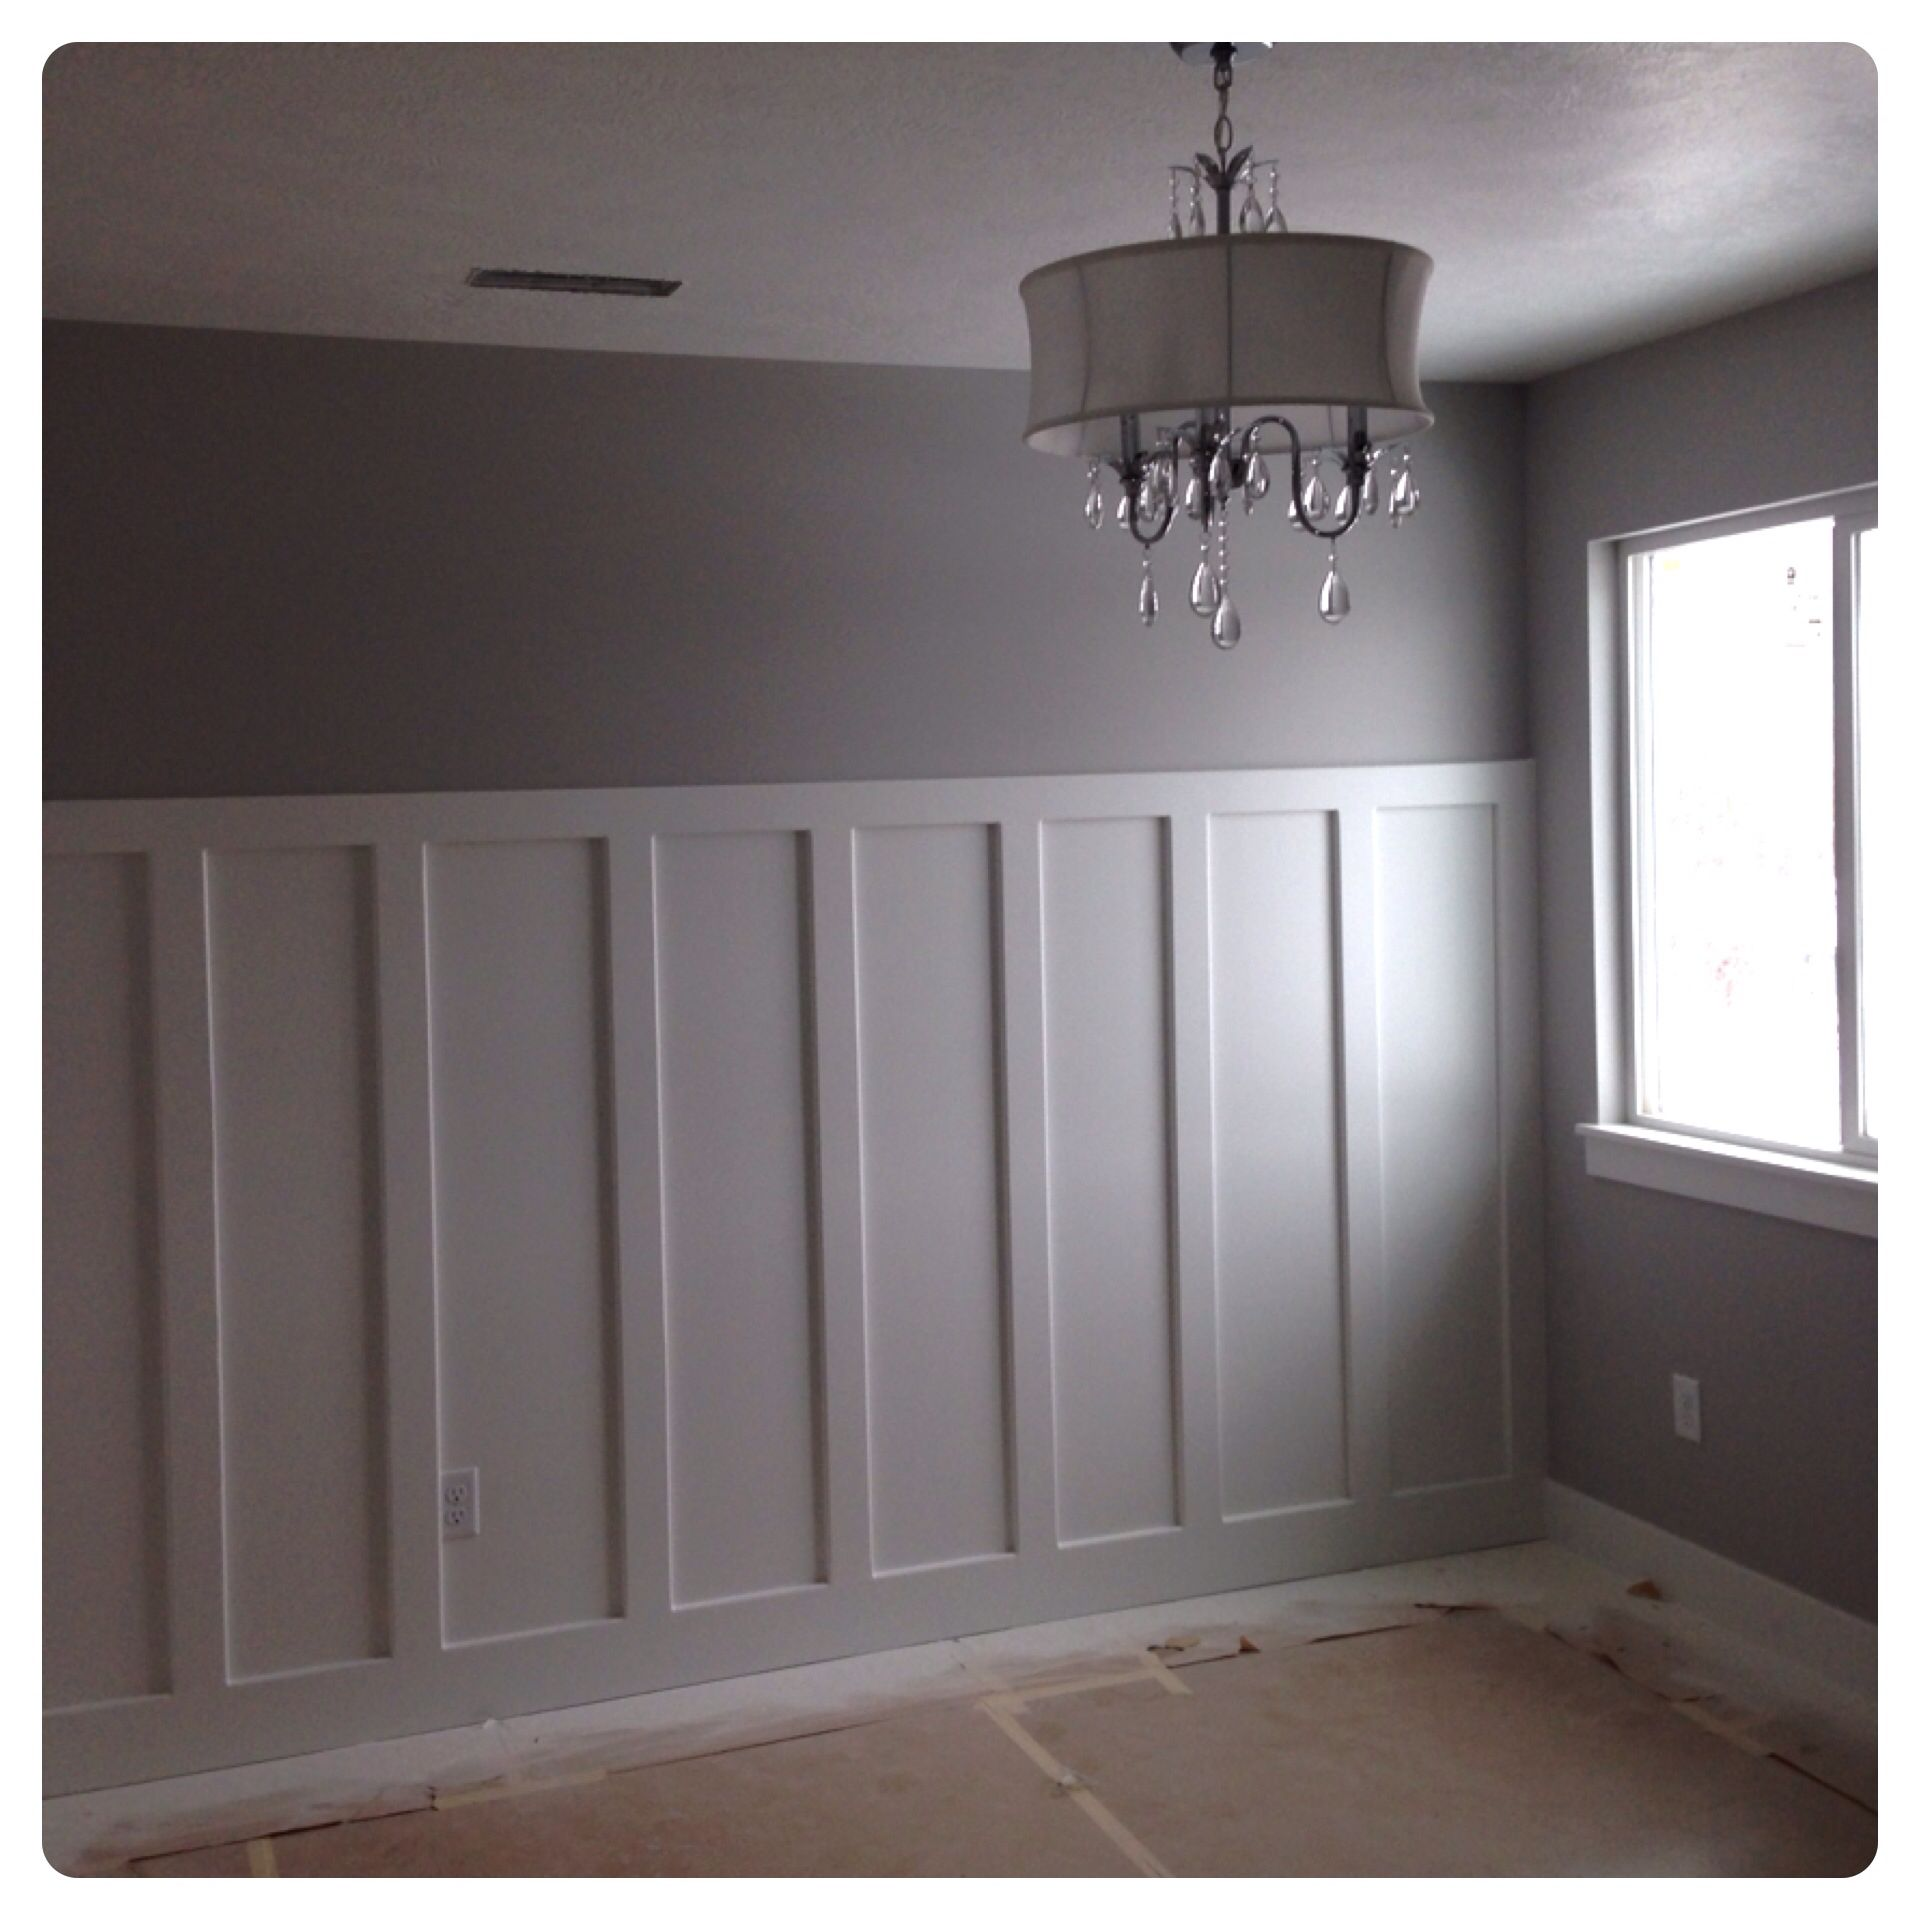 Wainscotting Dining Room Accent Wall: Wainscoting As A Accent Wall